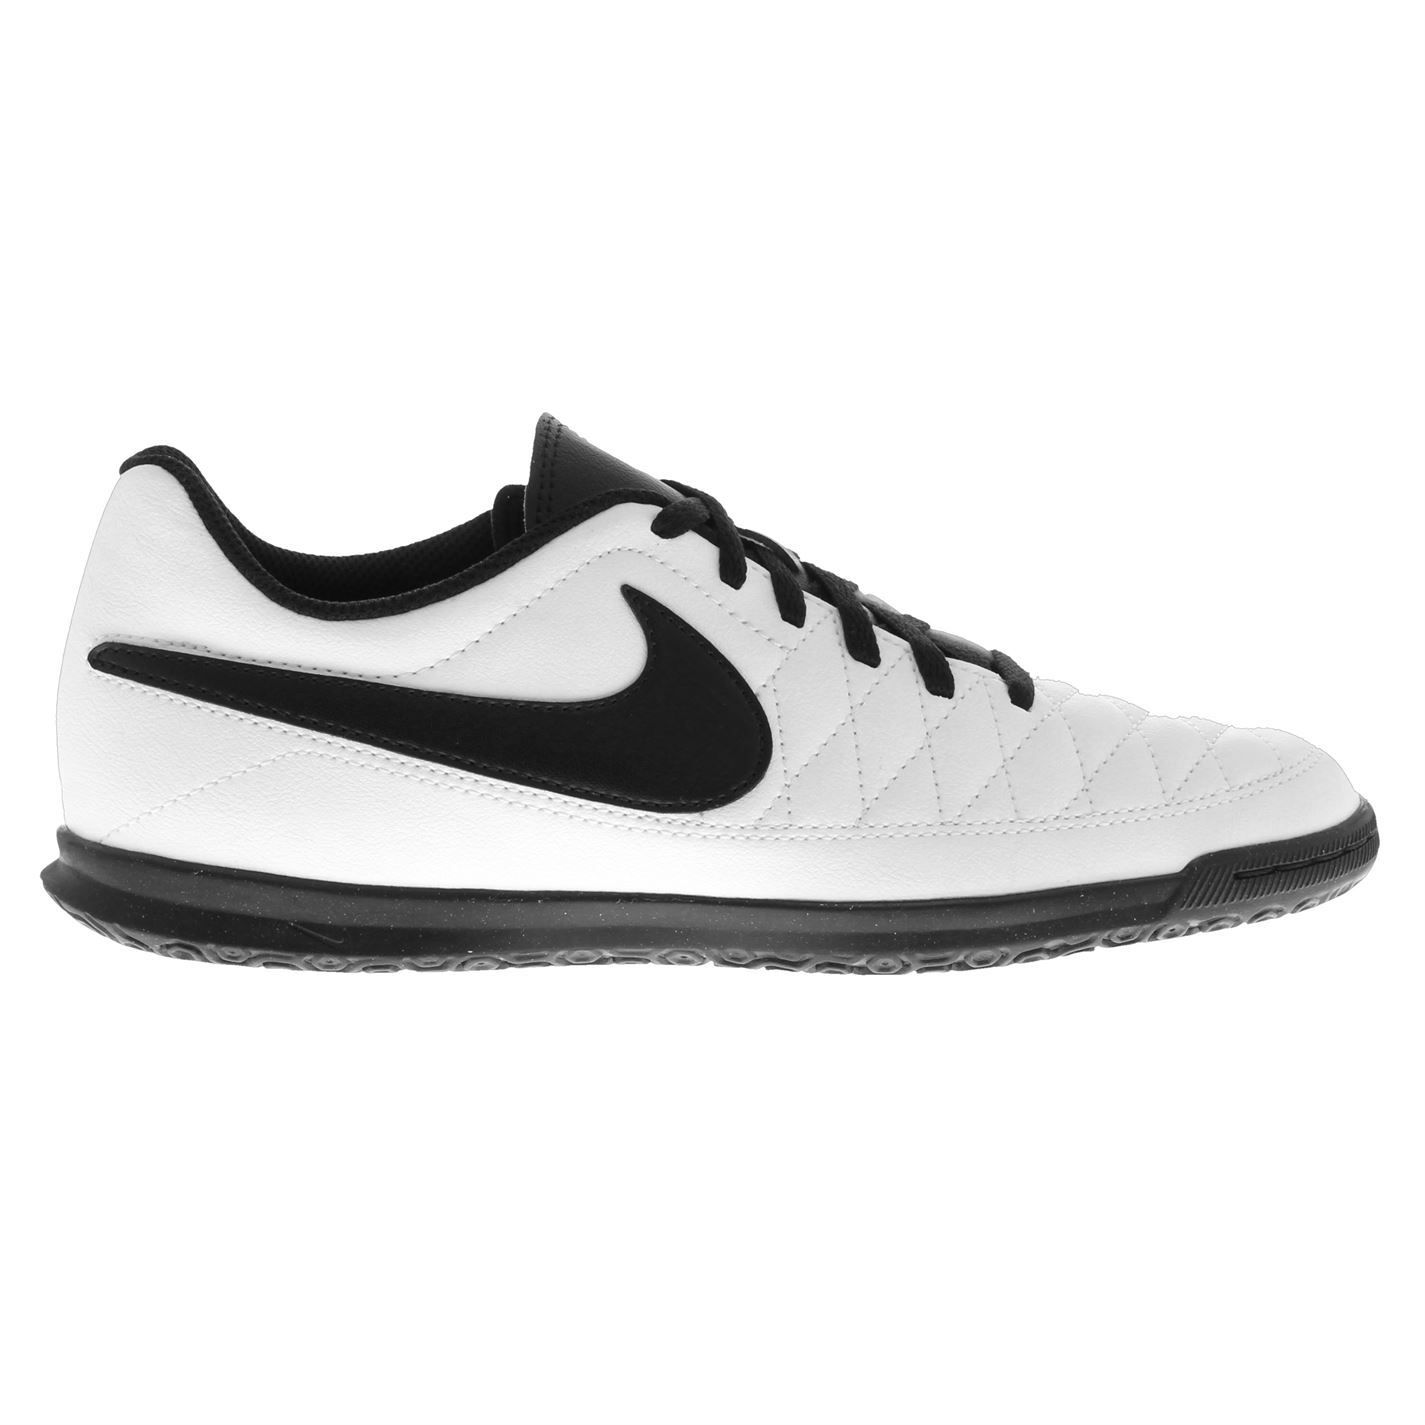 Nike-majestry-Indoor-Football-Baskets-Pour-Homme-Football-Futsal-Chaussures-Baskets-Bottes miniature 26